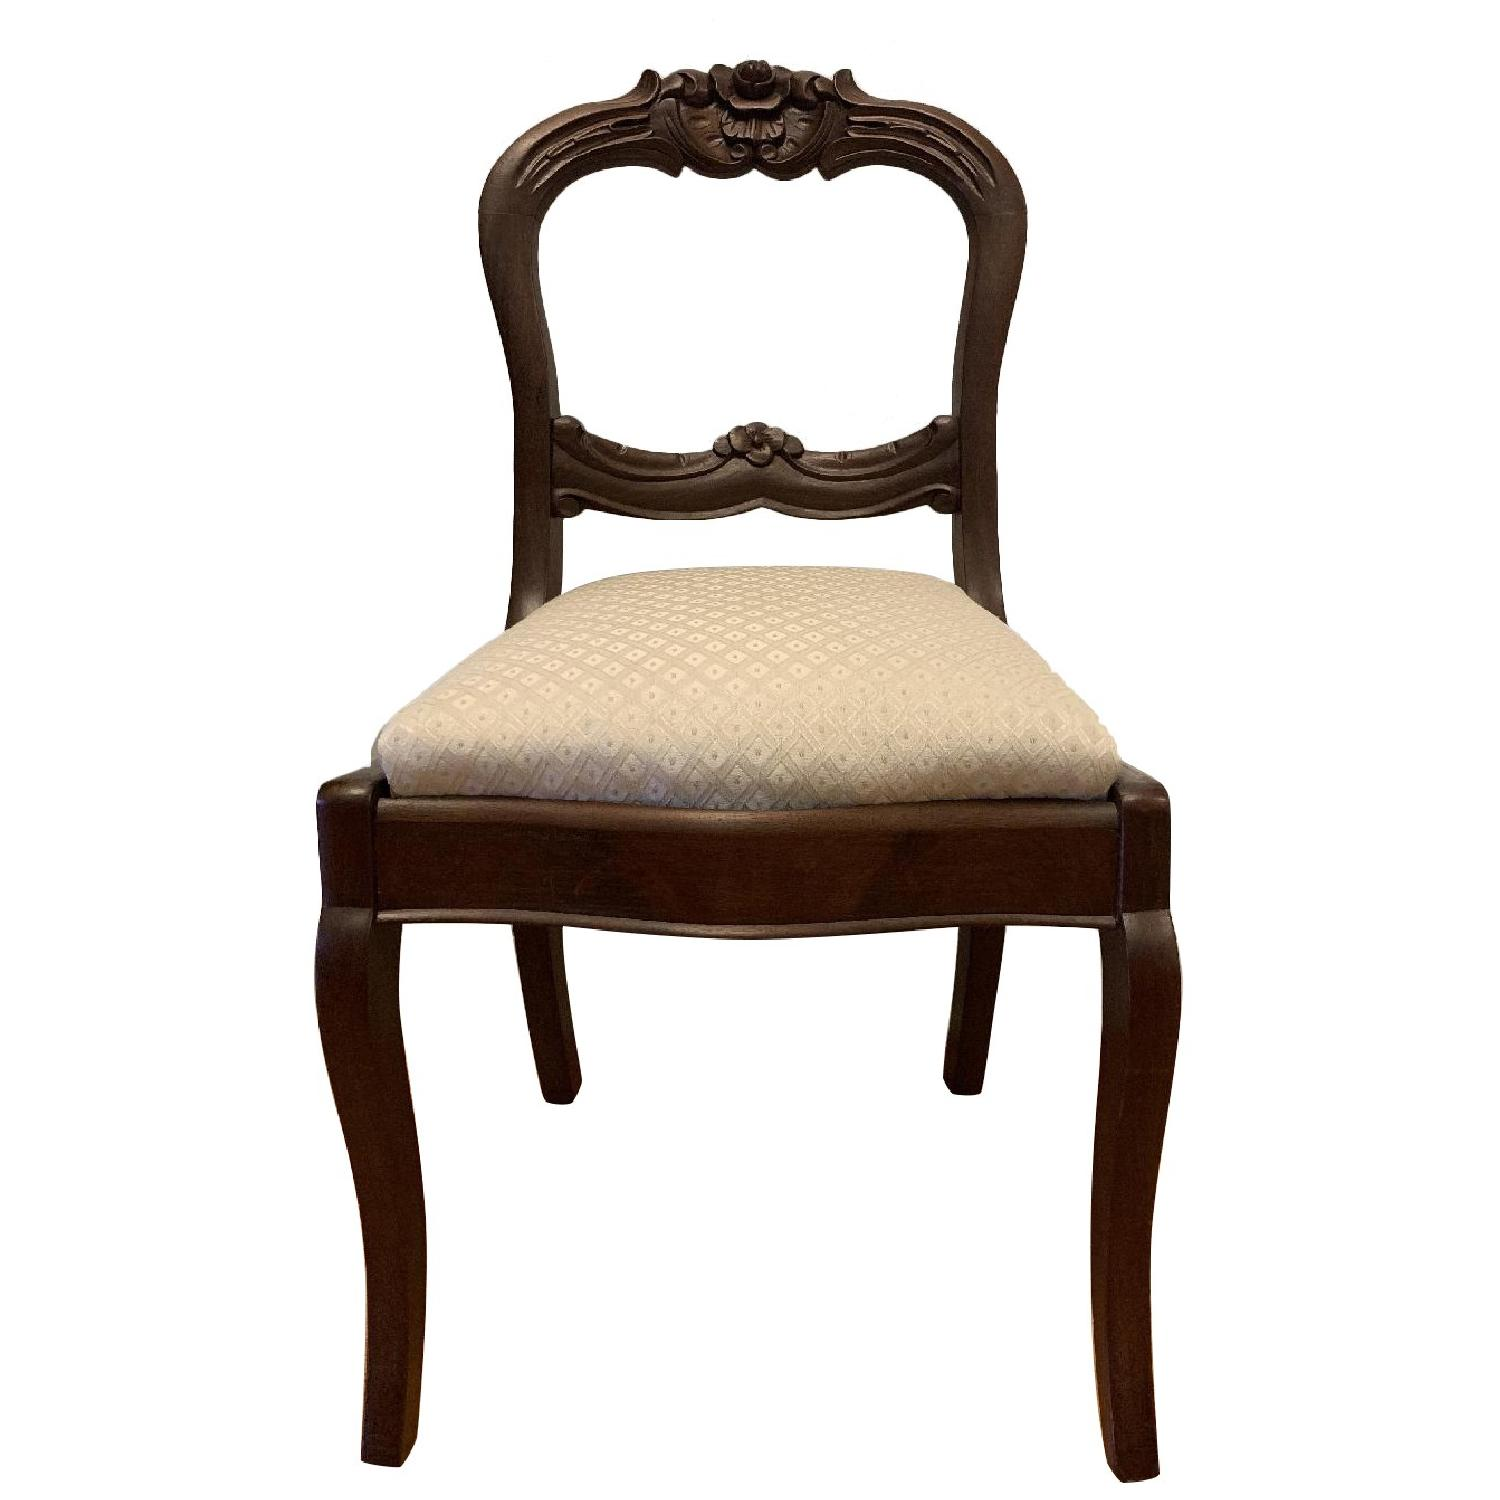 Vintage Cherry Upholstered Dining Chair - image-0